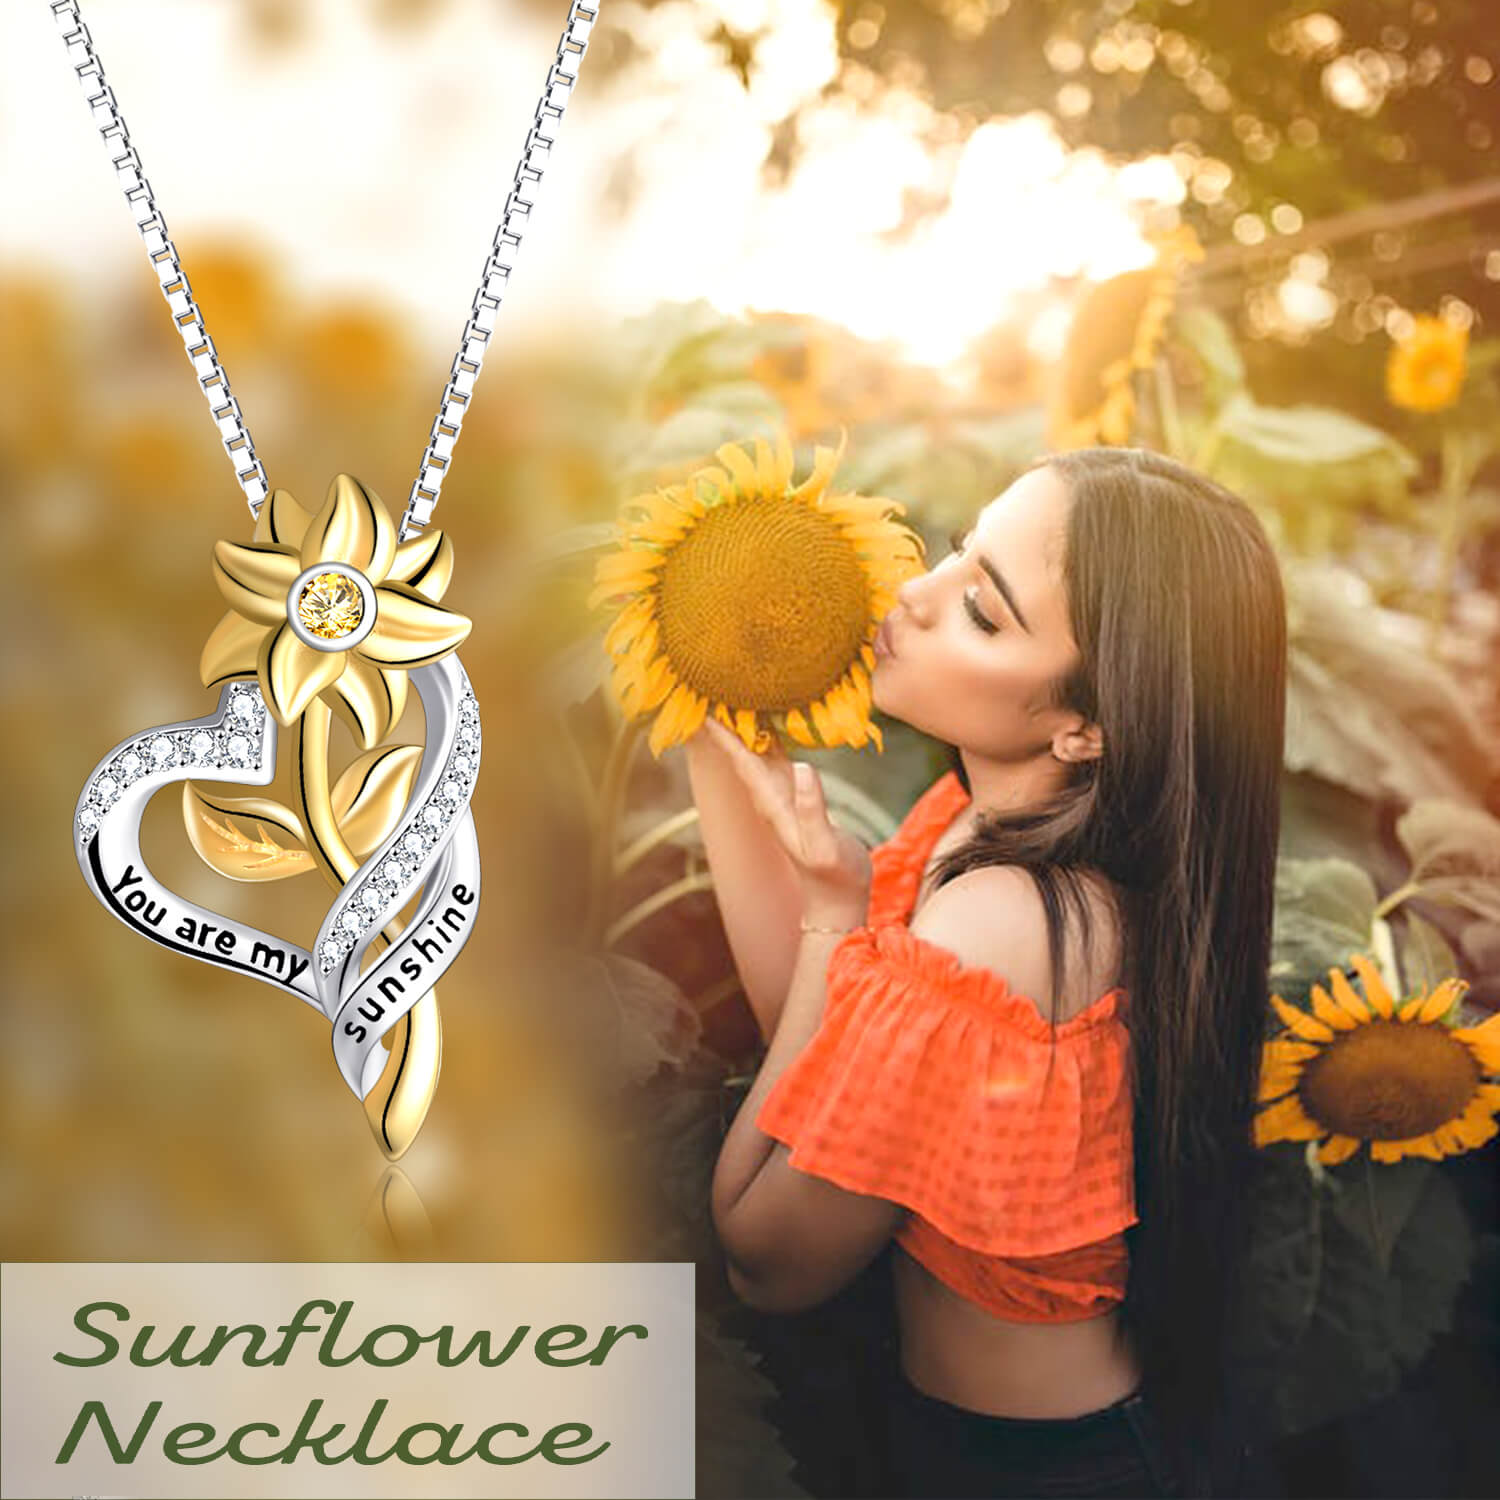 925 Sterling Silver Sunflower Necklace 'You are My Sunshine' Engraved on Pendant - onlyone